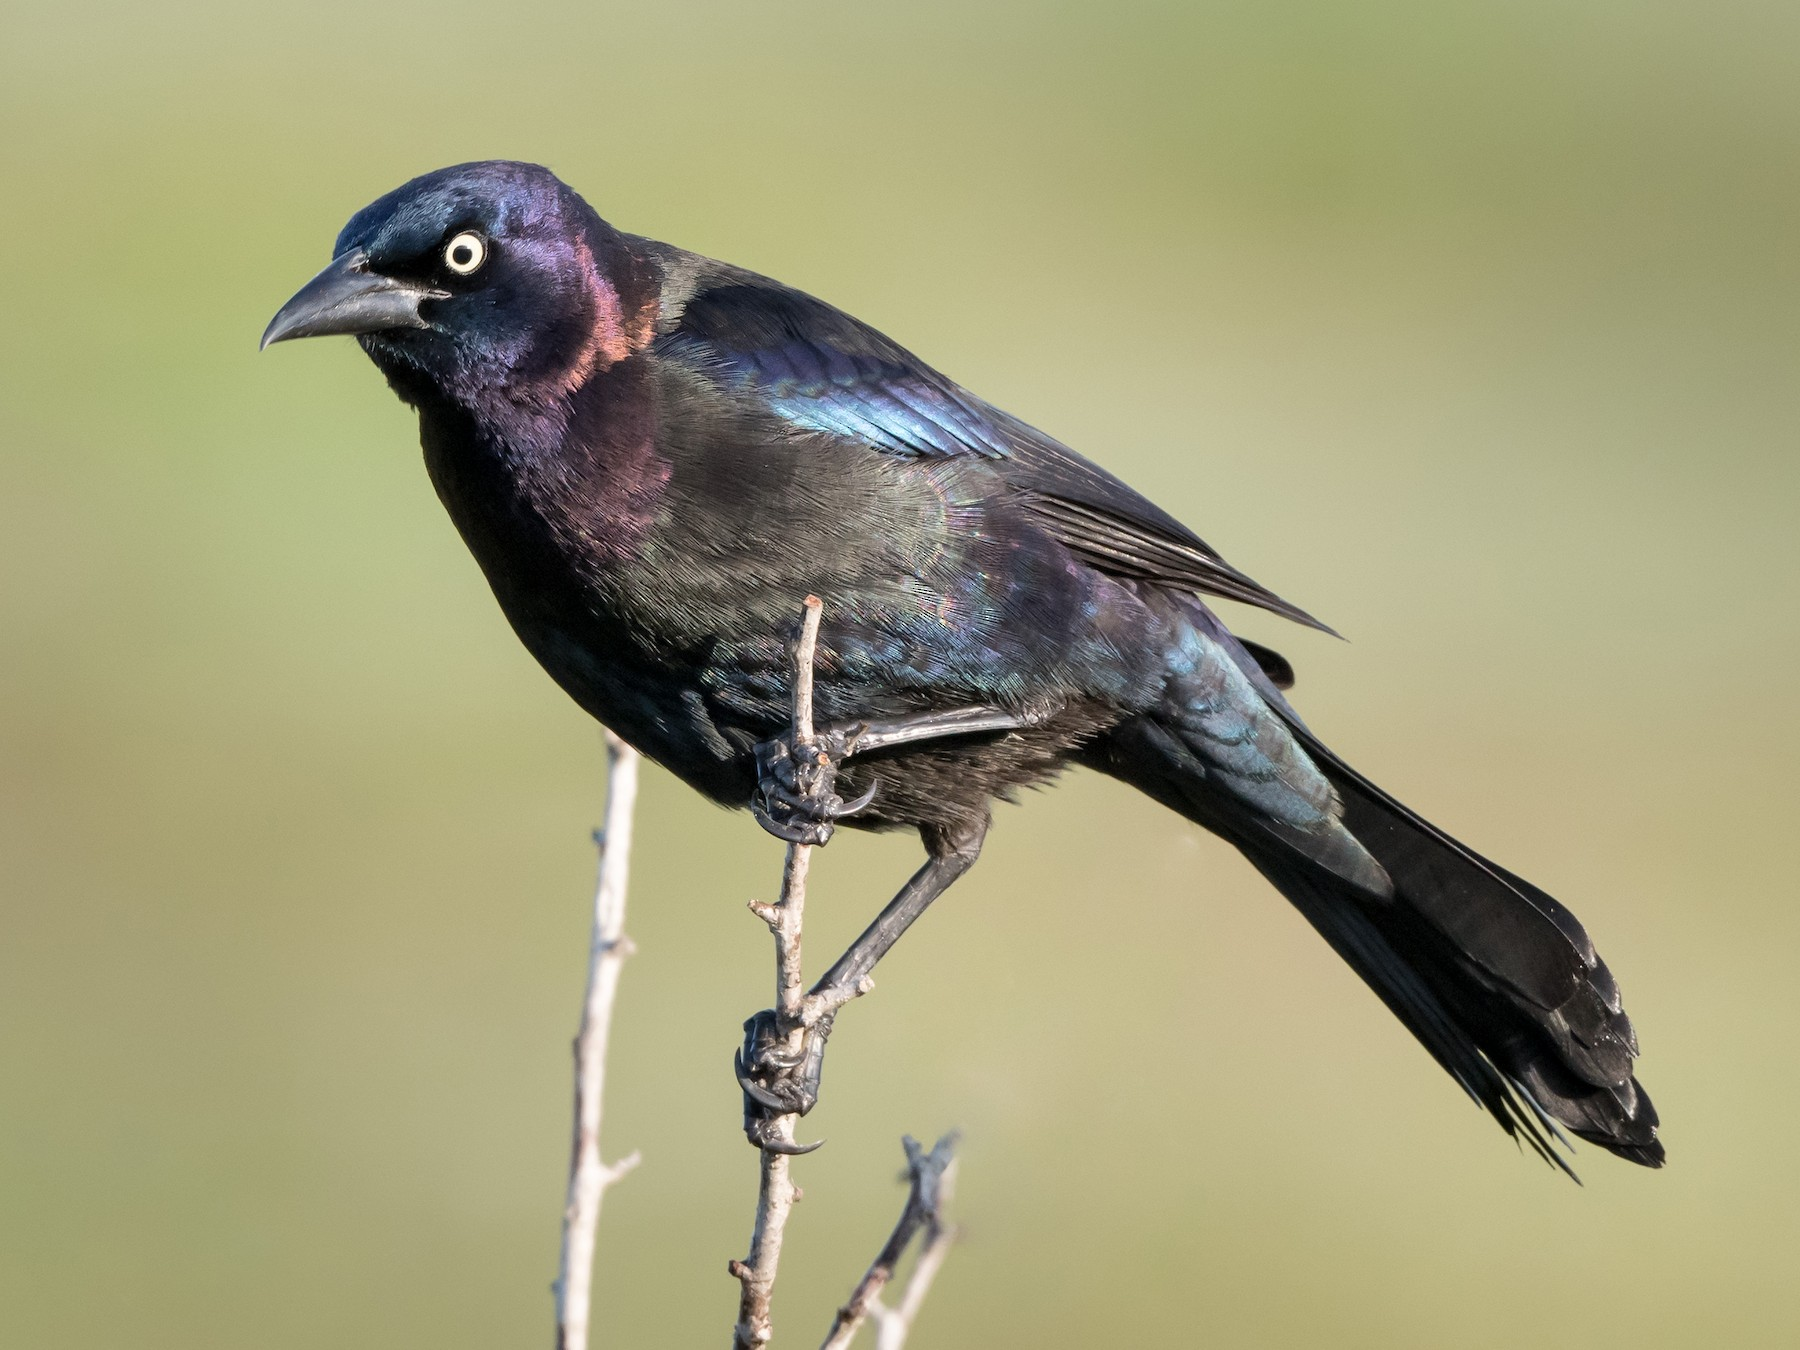 Common Grackle - Melissa James